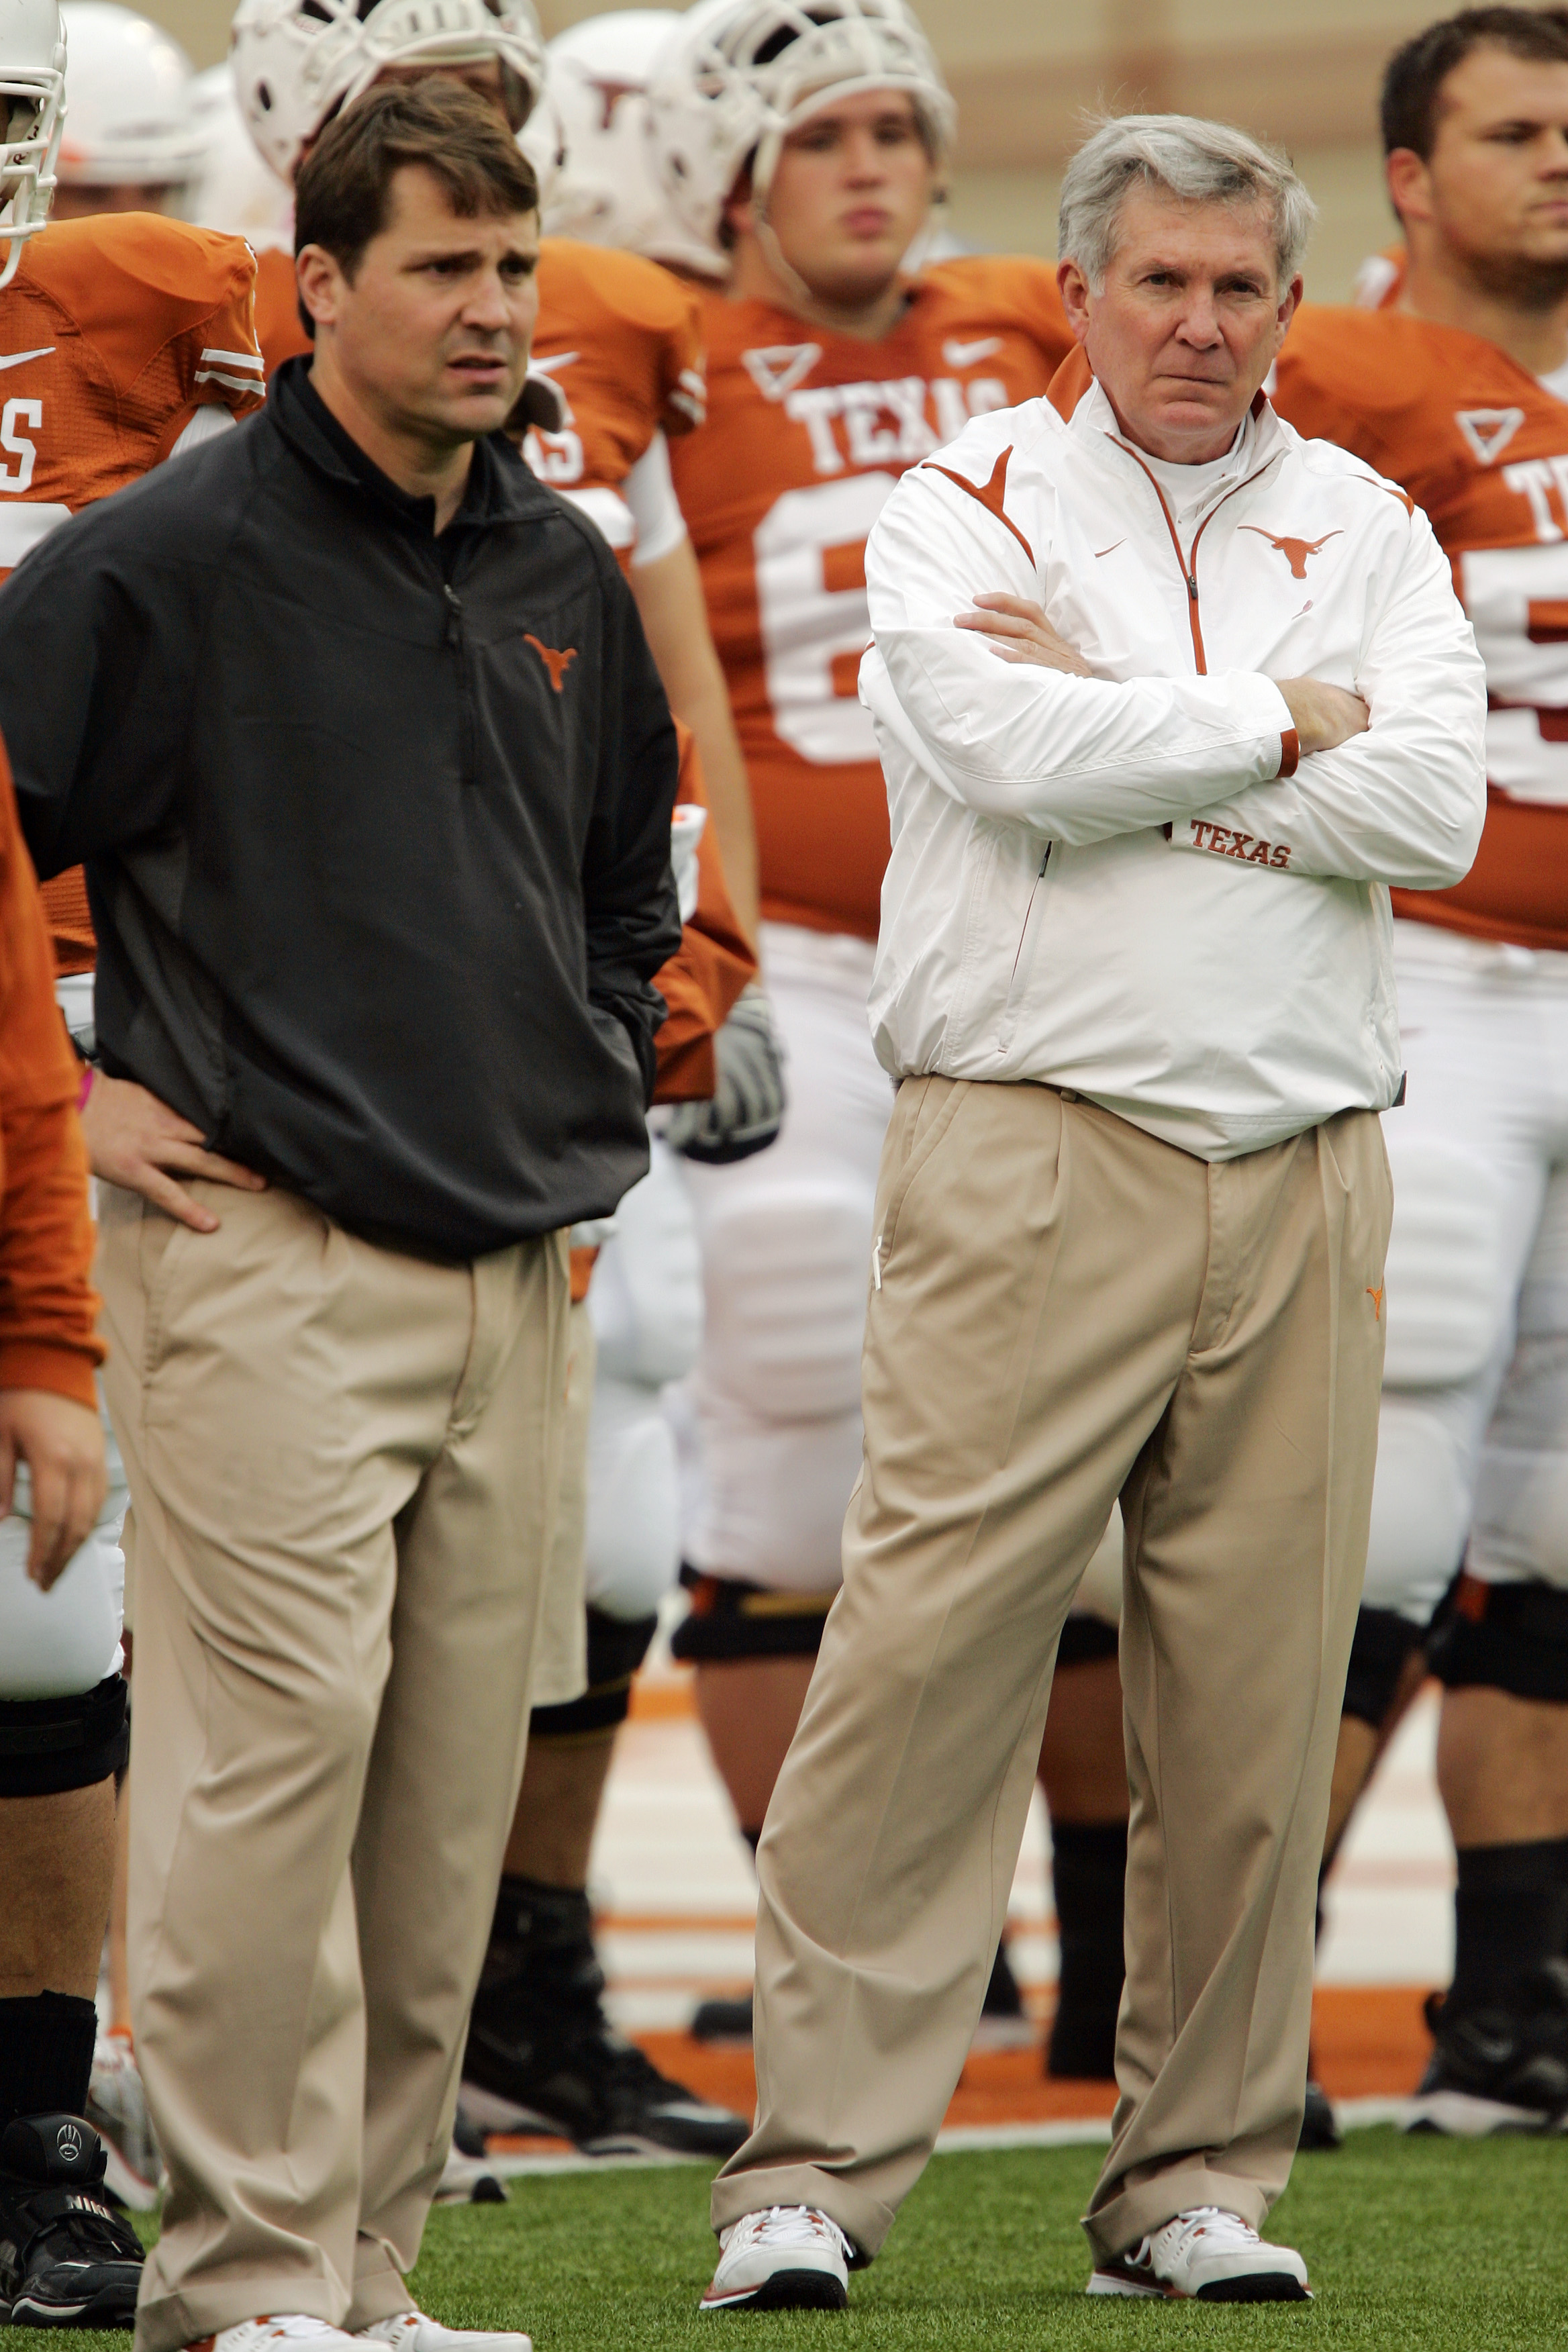 AUSTIN, TX - OCTOBER 10: Defensive coordinator Will Muschamp and head coach Mack Brown of the Texas Longhorns lead their team in pregame drills before playing the Colorado Buffaloes on October 10, 2009 at the Darrell K Royal-Texas Memorial Stadium in Aust